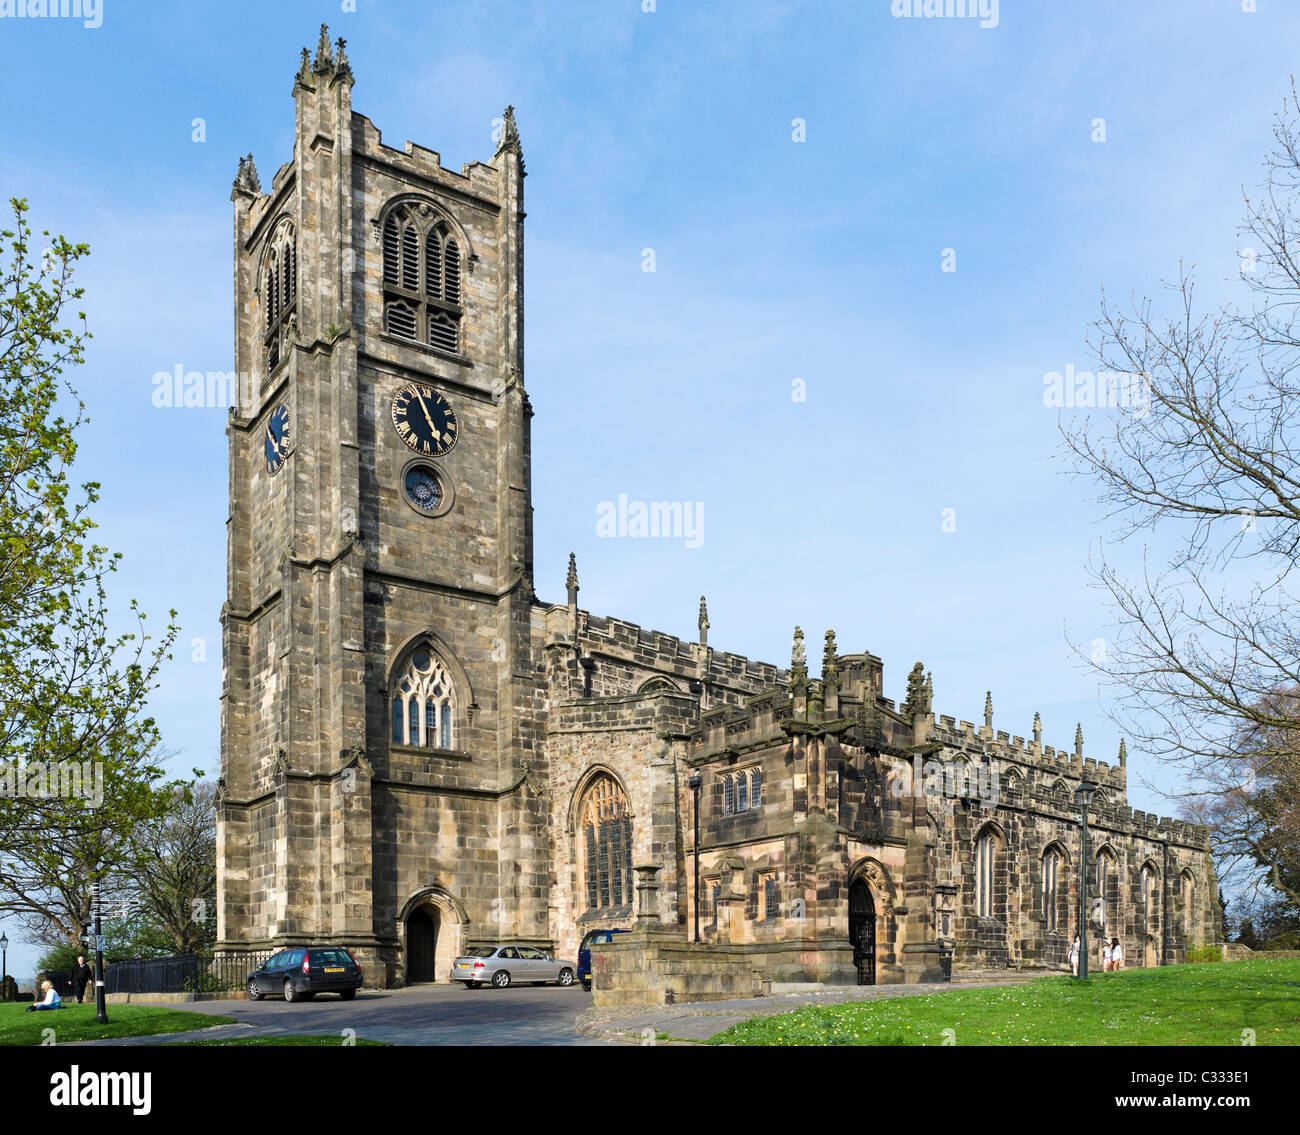 The Priory Church of St Mary next to the Castle, Lancaster, Lancashire, UK - Stock Image